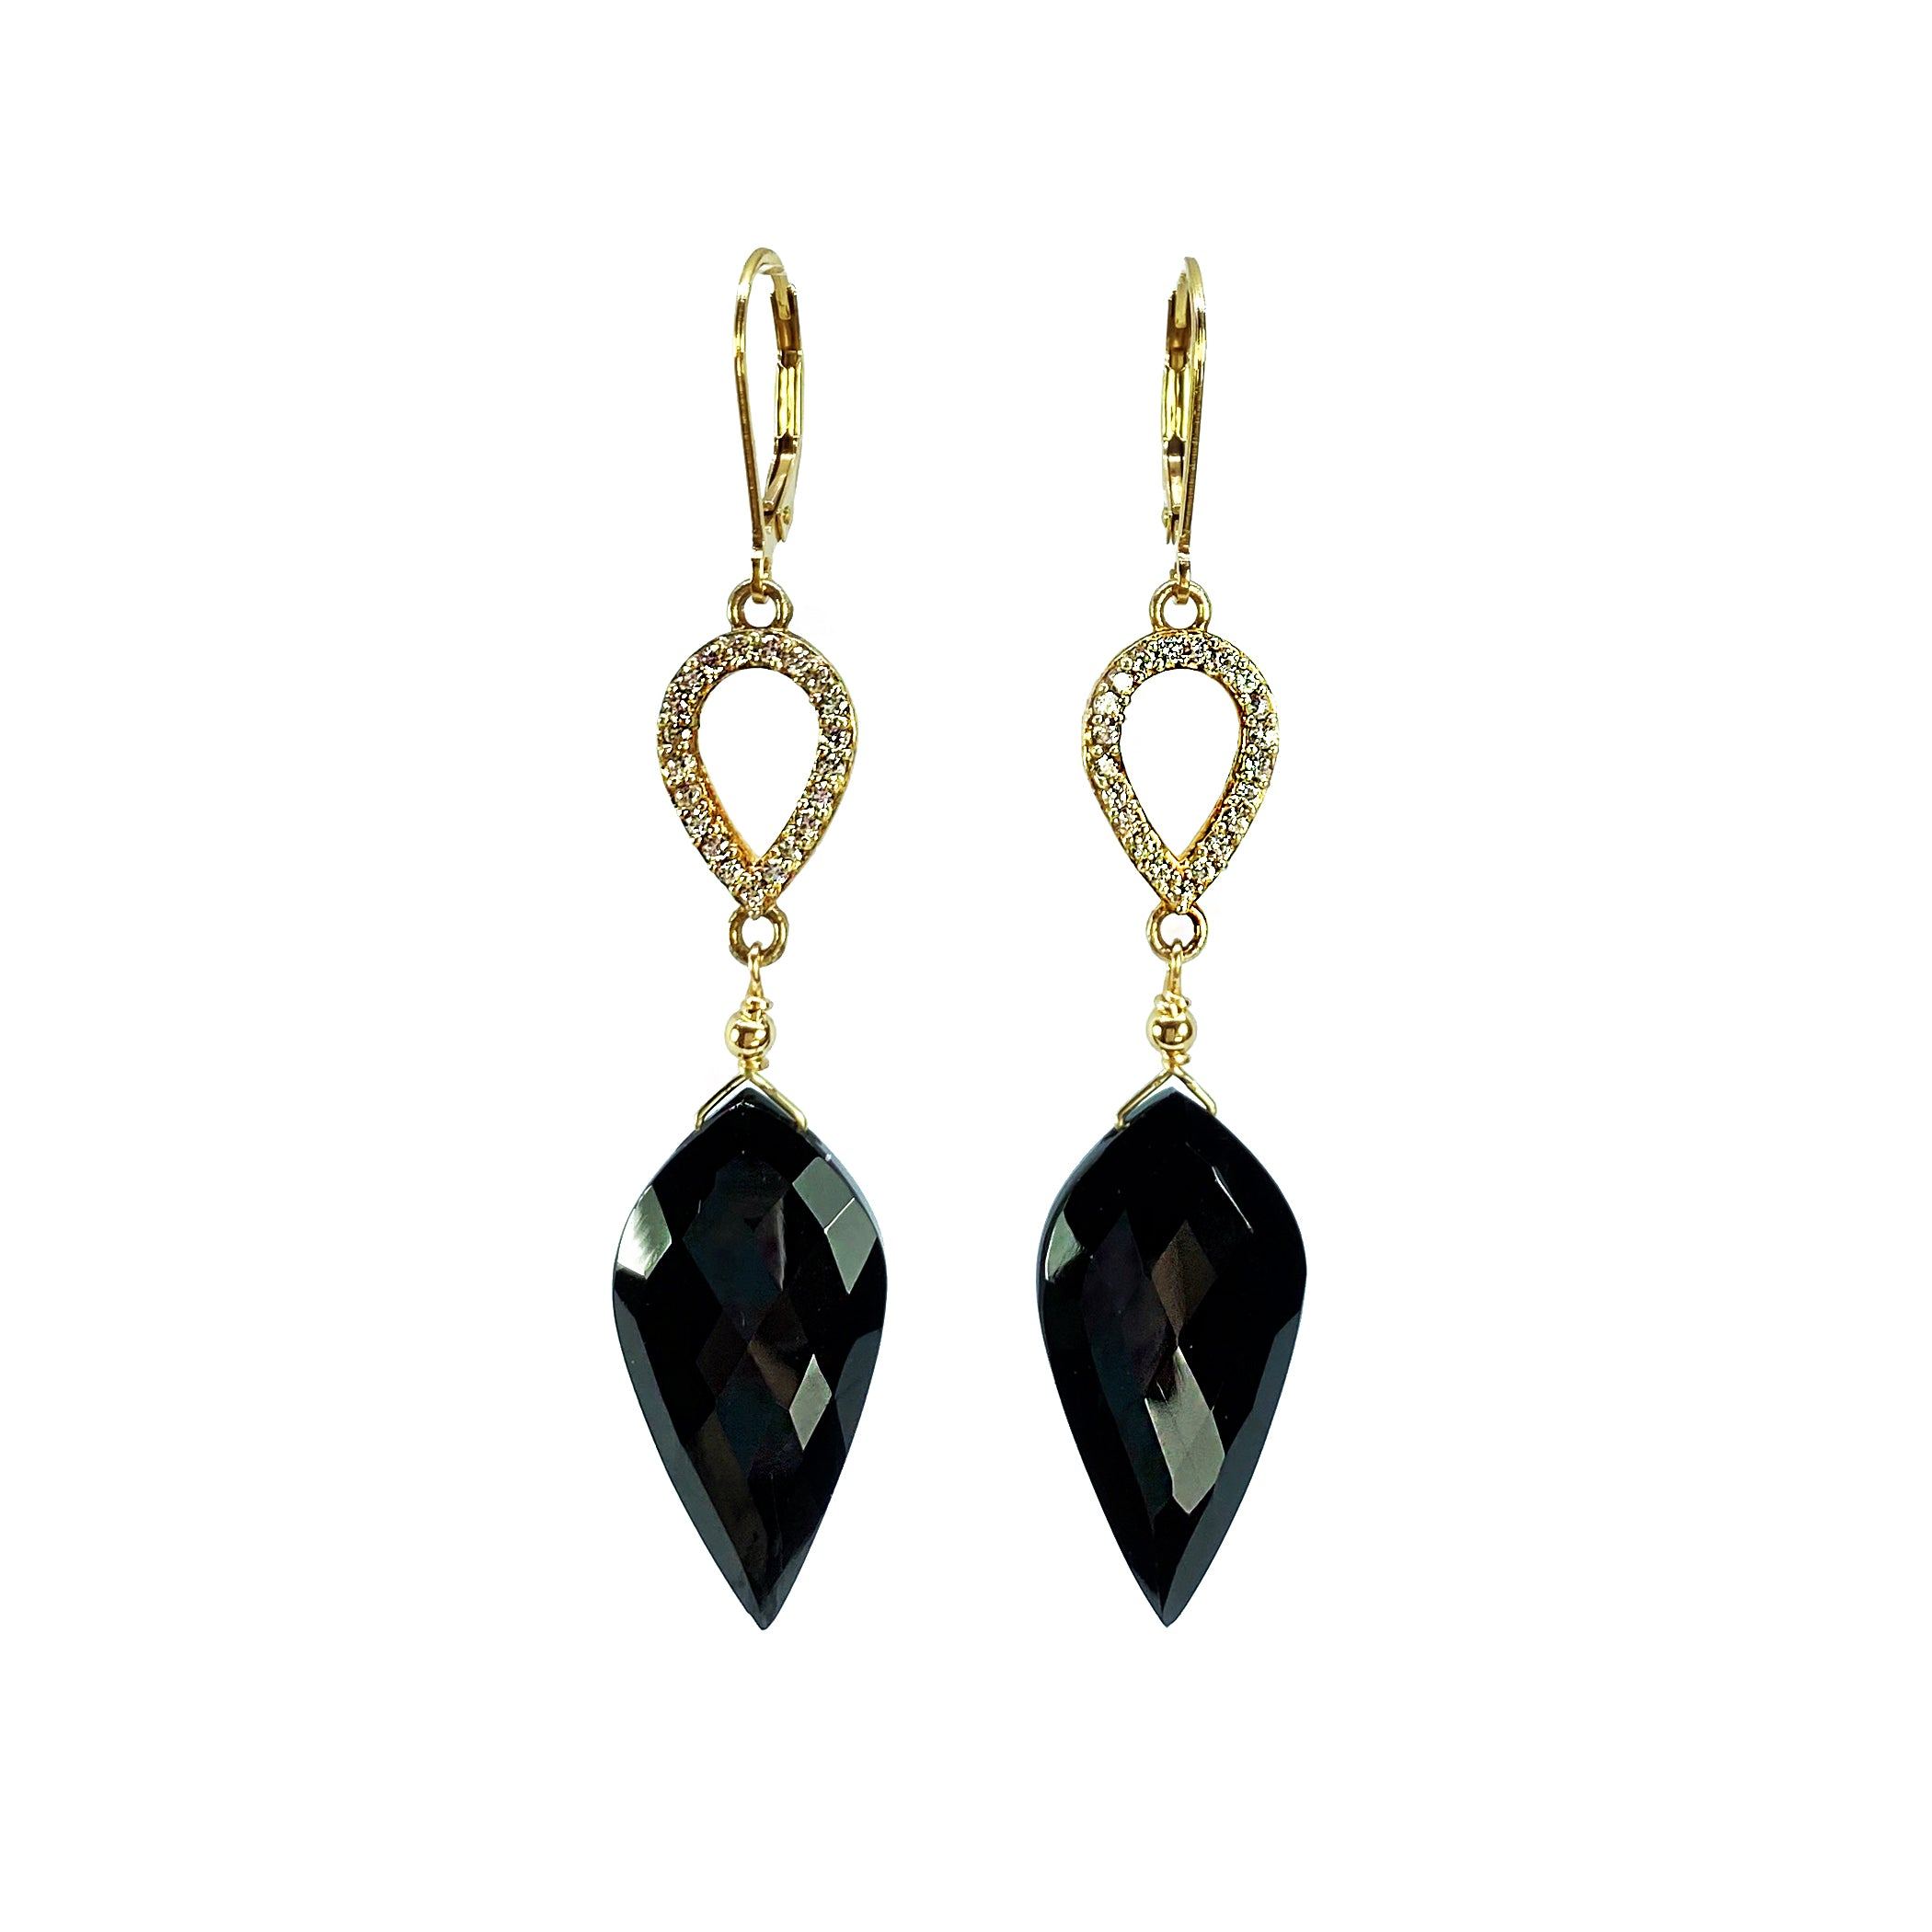 Black Spinel and White Topaz